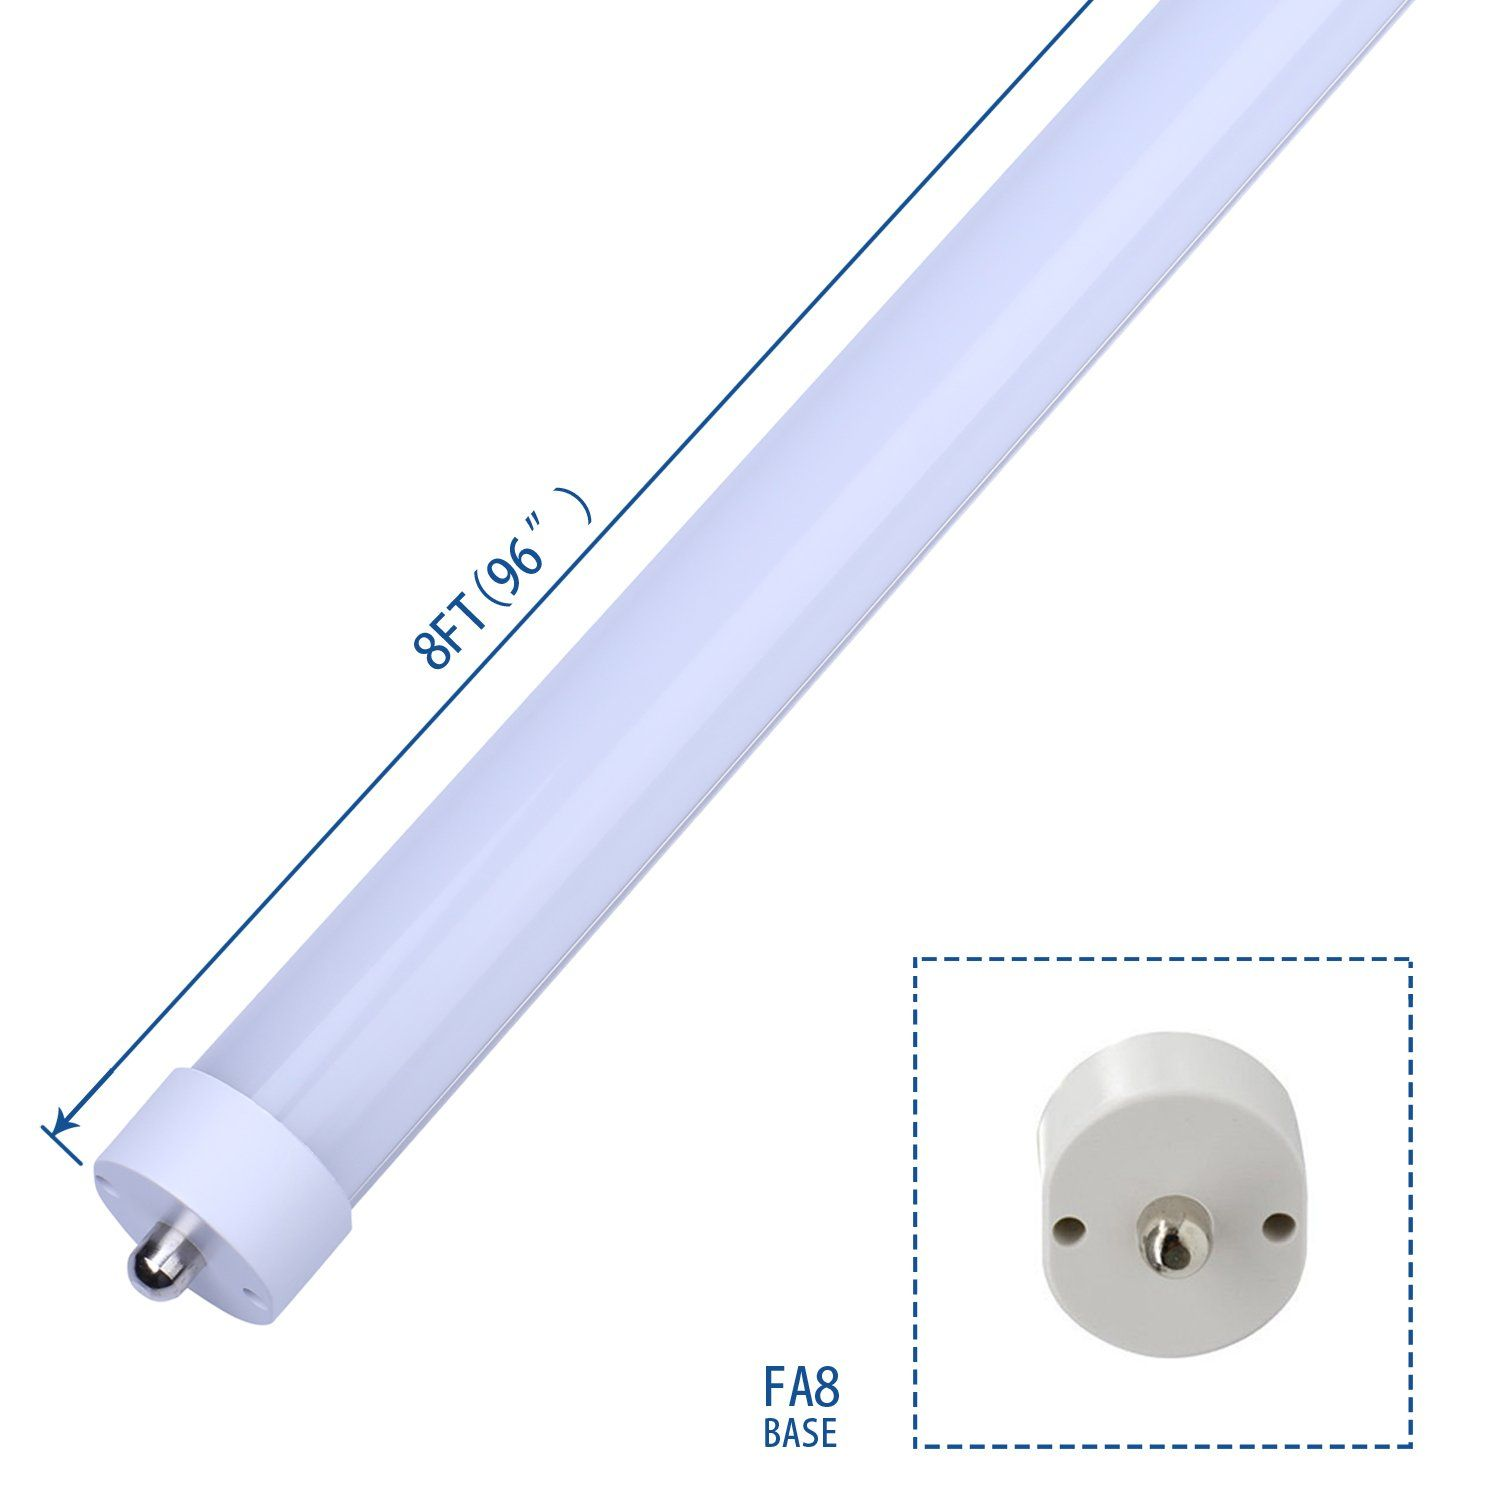 Led Lights Tube Lamp T8 T10 T12 45w 100w Equivalent Dualended Power Cold White 6000k Frosted Cover Led Fluorescent Fluorescent Tube Light Led Fluorescent Tube